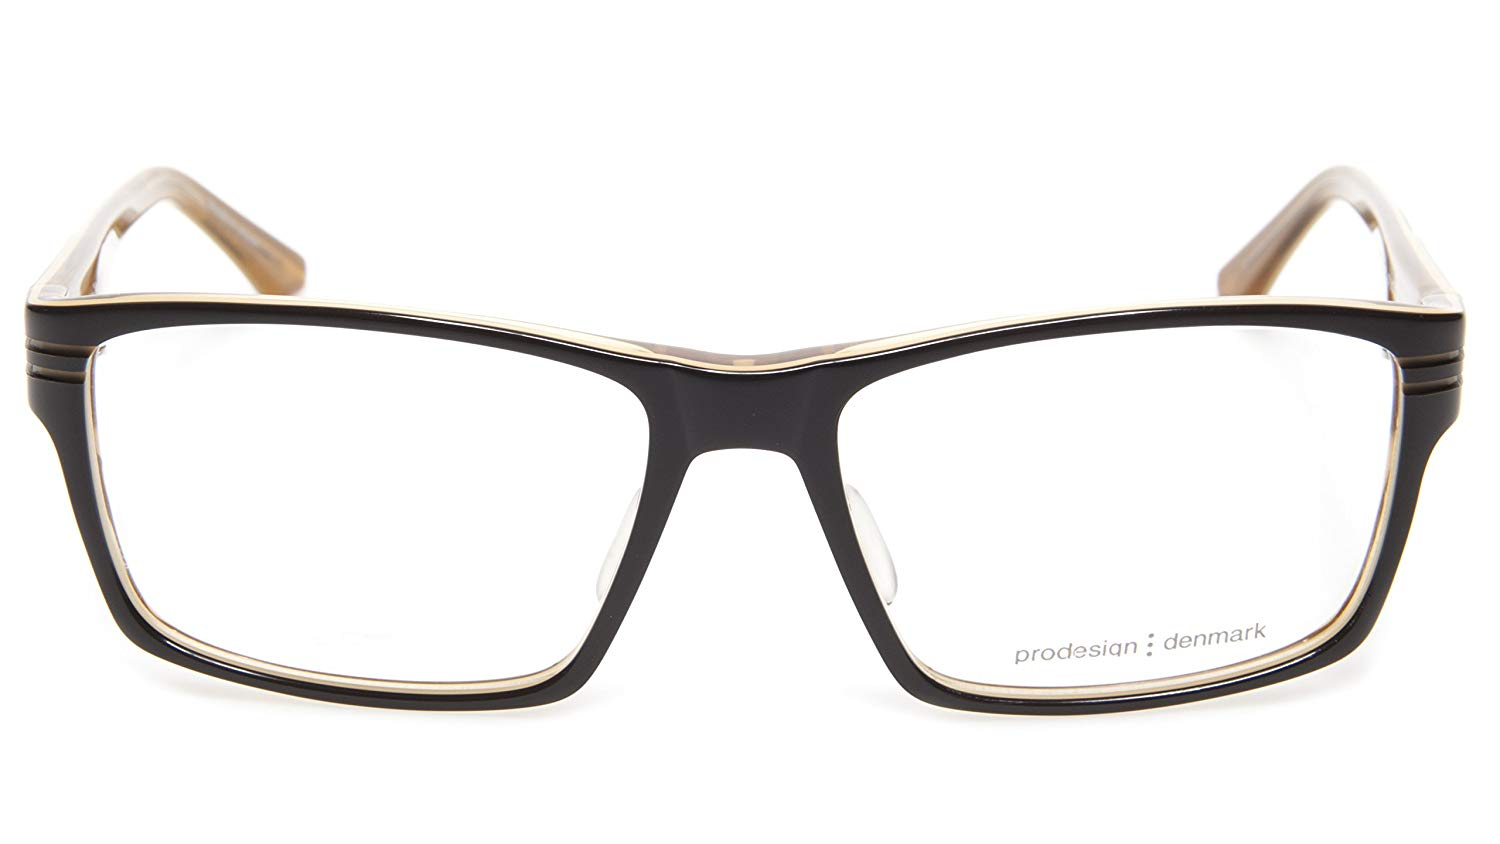 92271af77dde Get Quotations · NEW PRODESIGN DENMARK 1699 1 c.5222 CHOCOLATE EYEGLASSES  57-17-140 B38mm